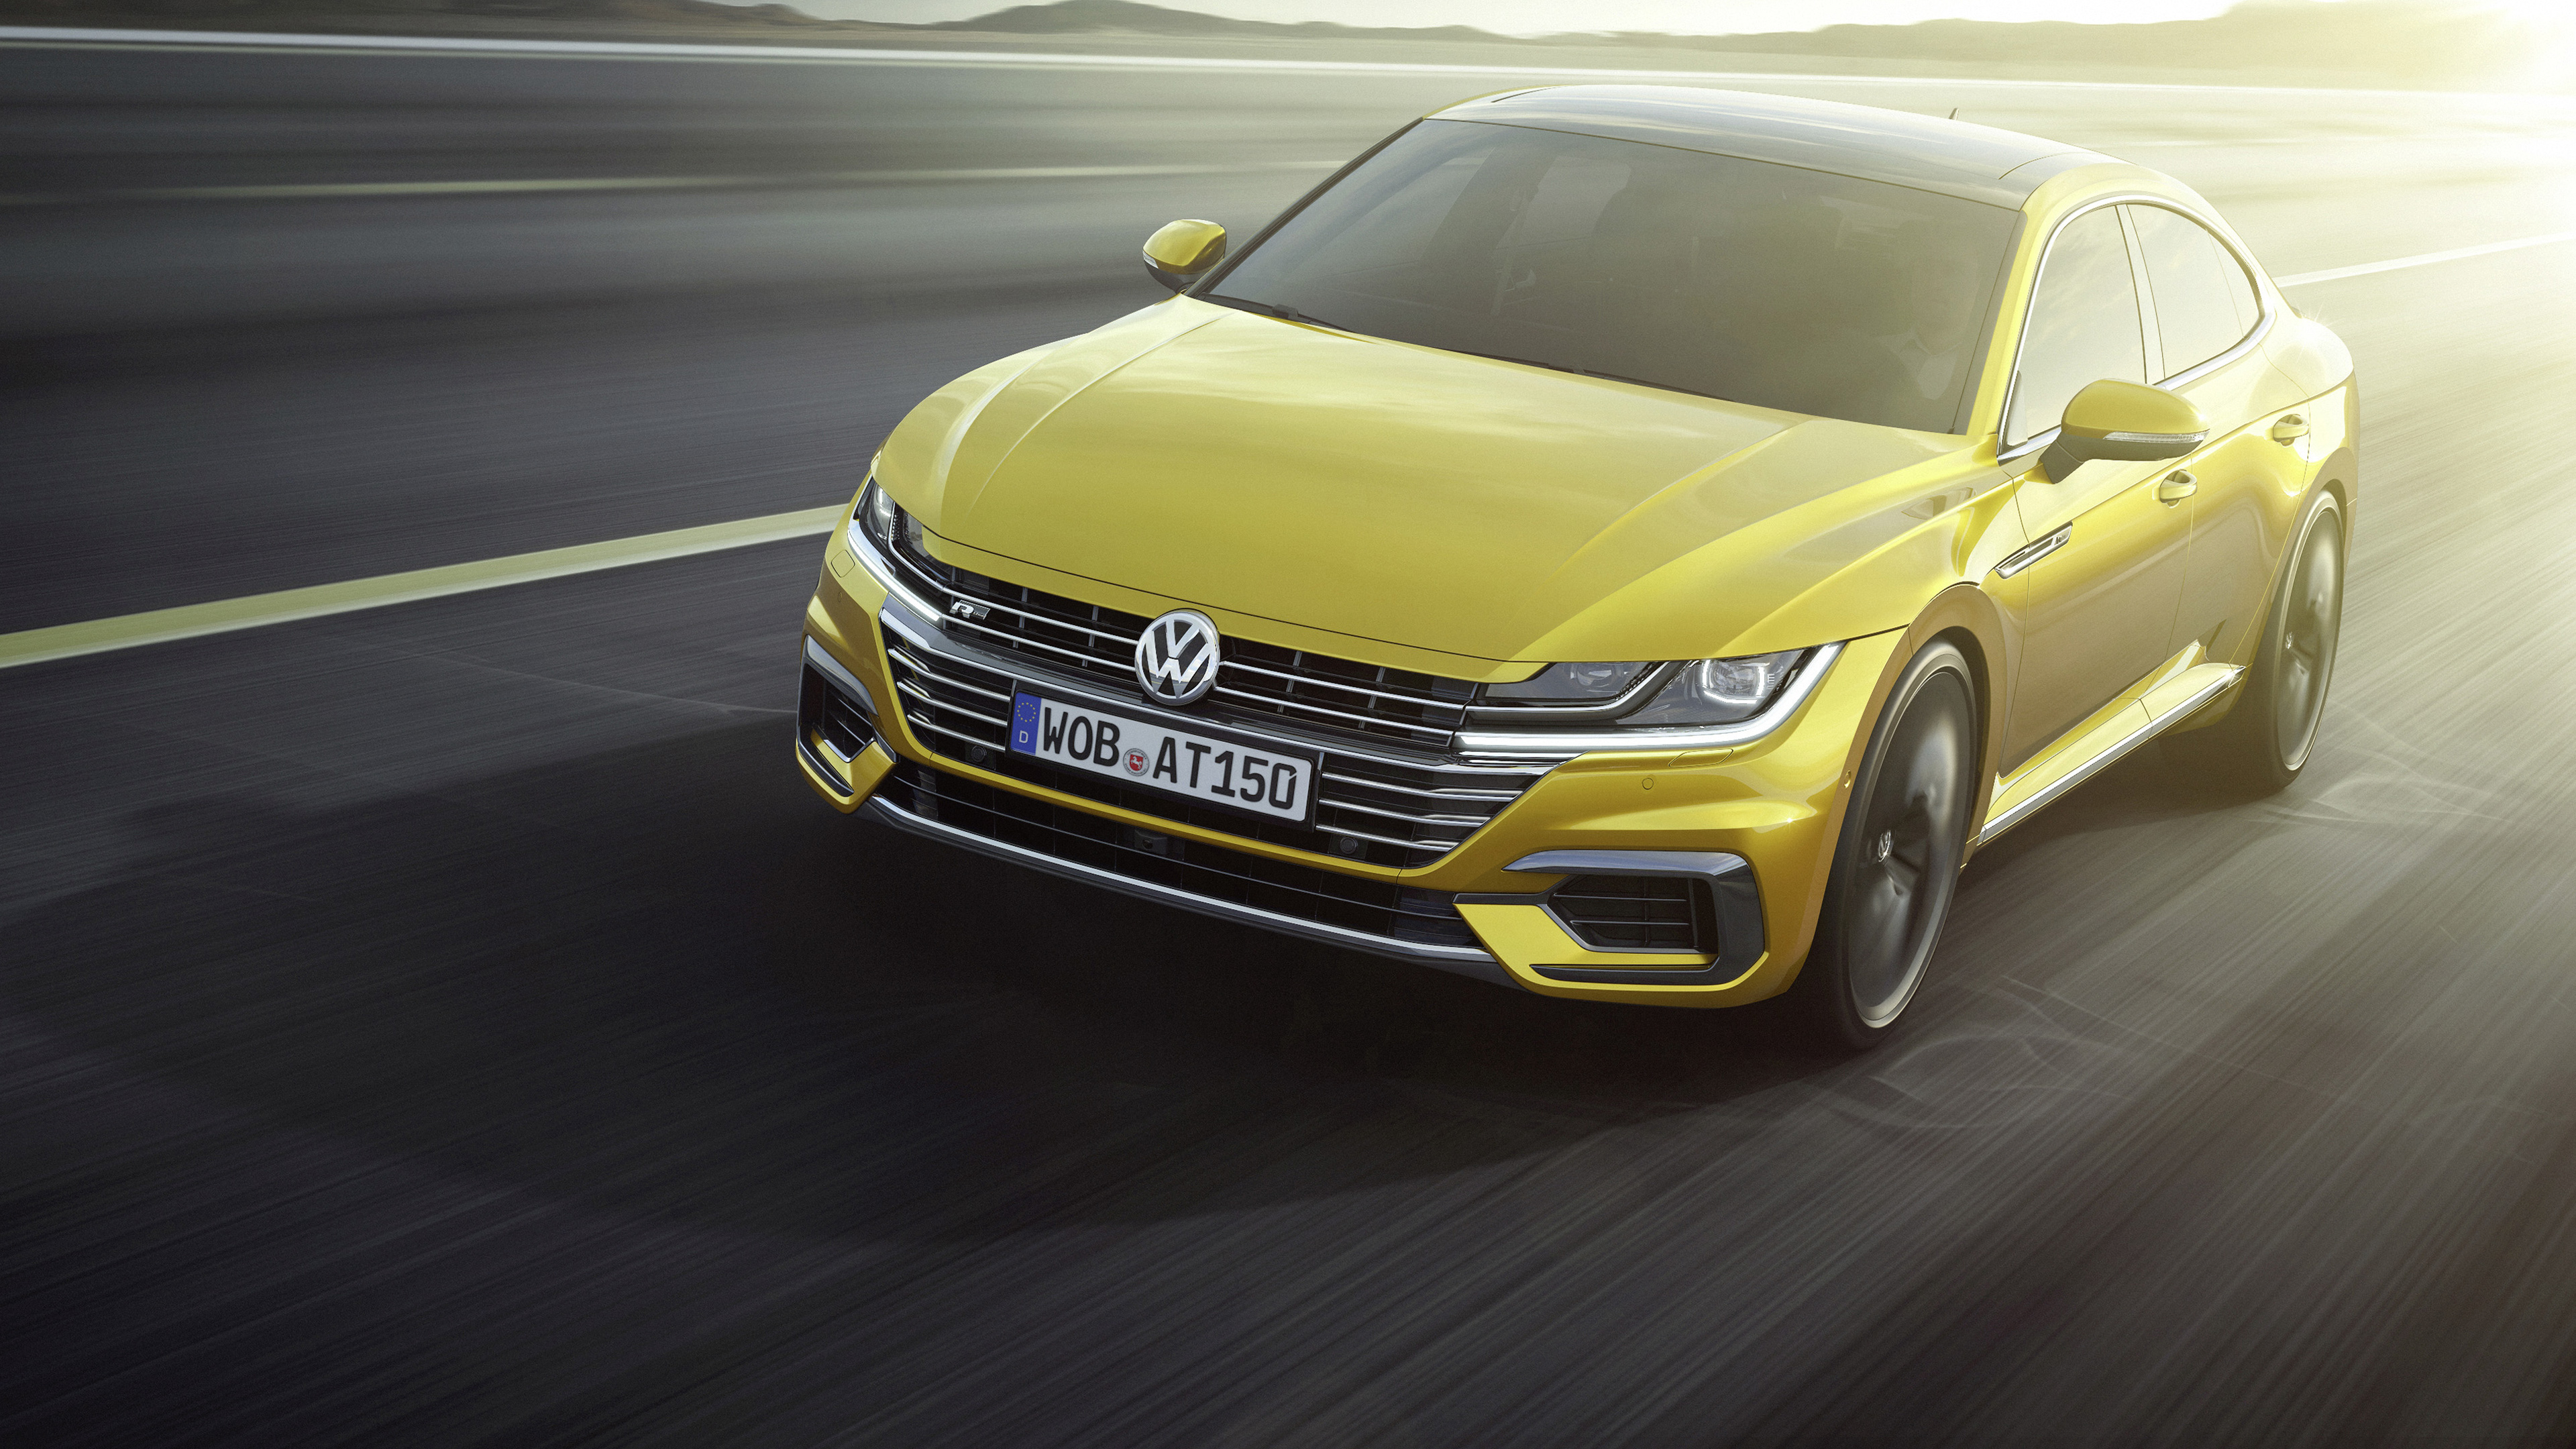 2017 Volkswagen Arteon R Line 4k Wallpaper Hd Car Wallpapers